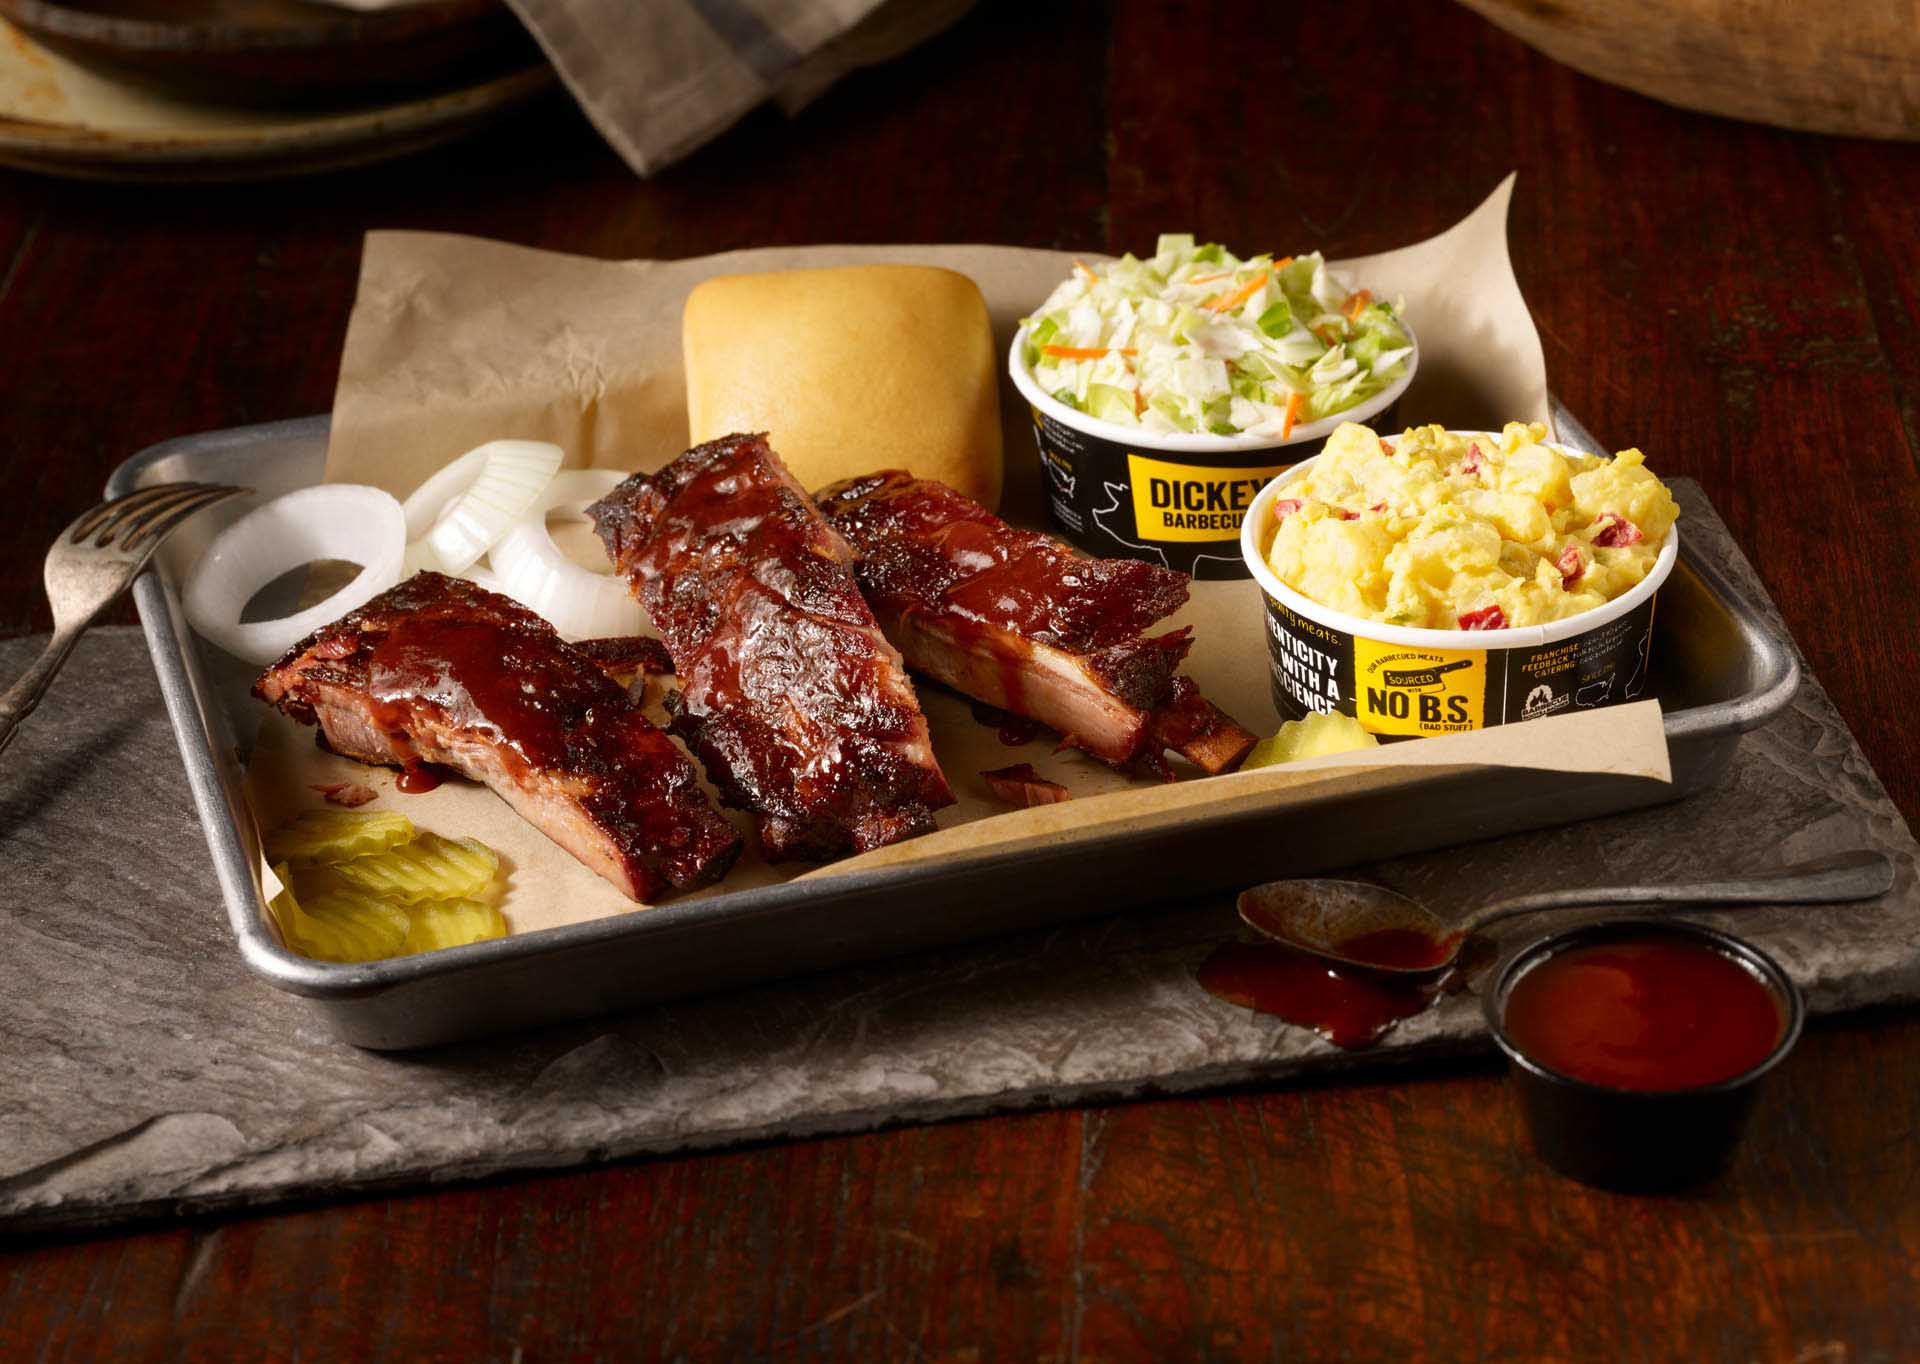 ChewBoom: All You Can Eat Ribs at Dickey's